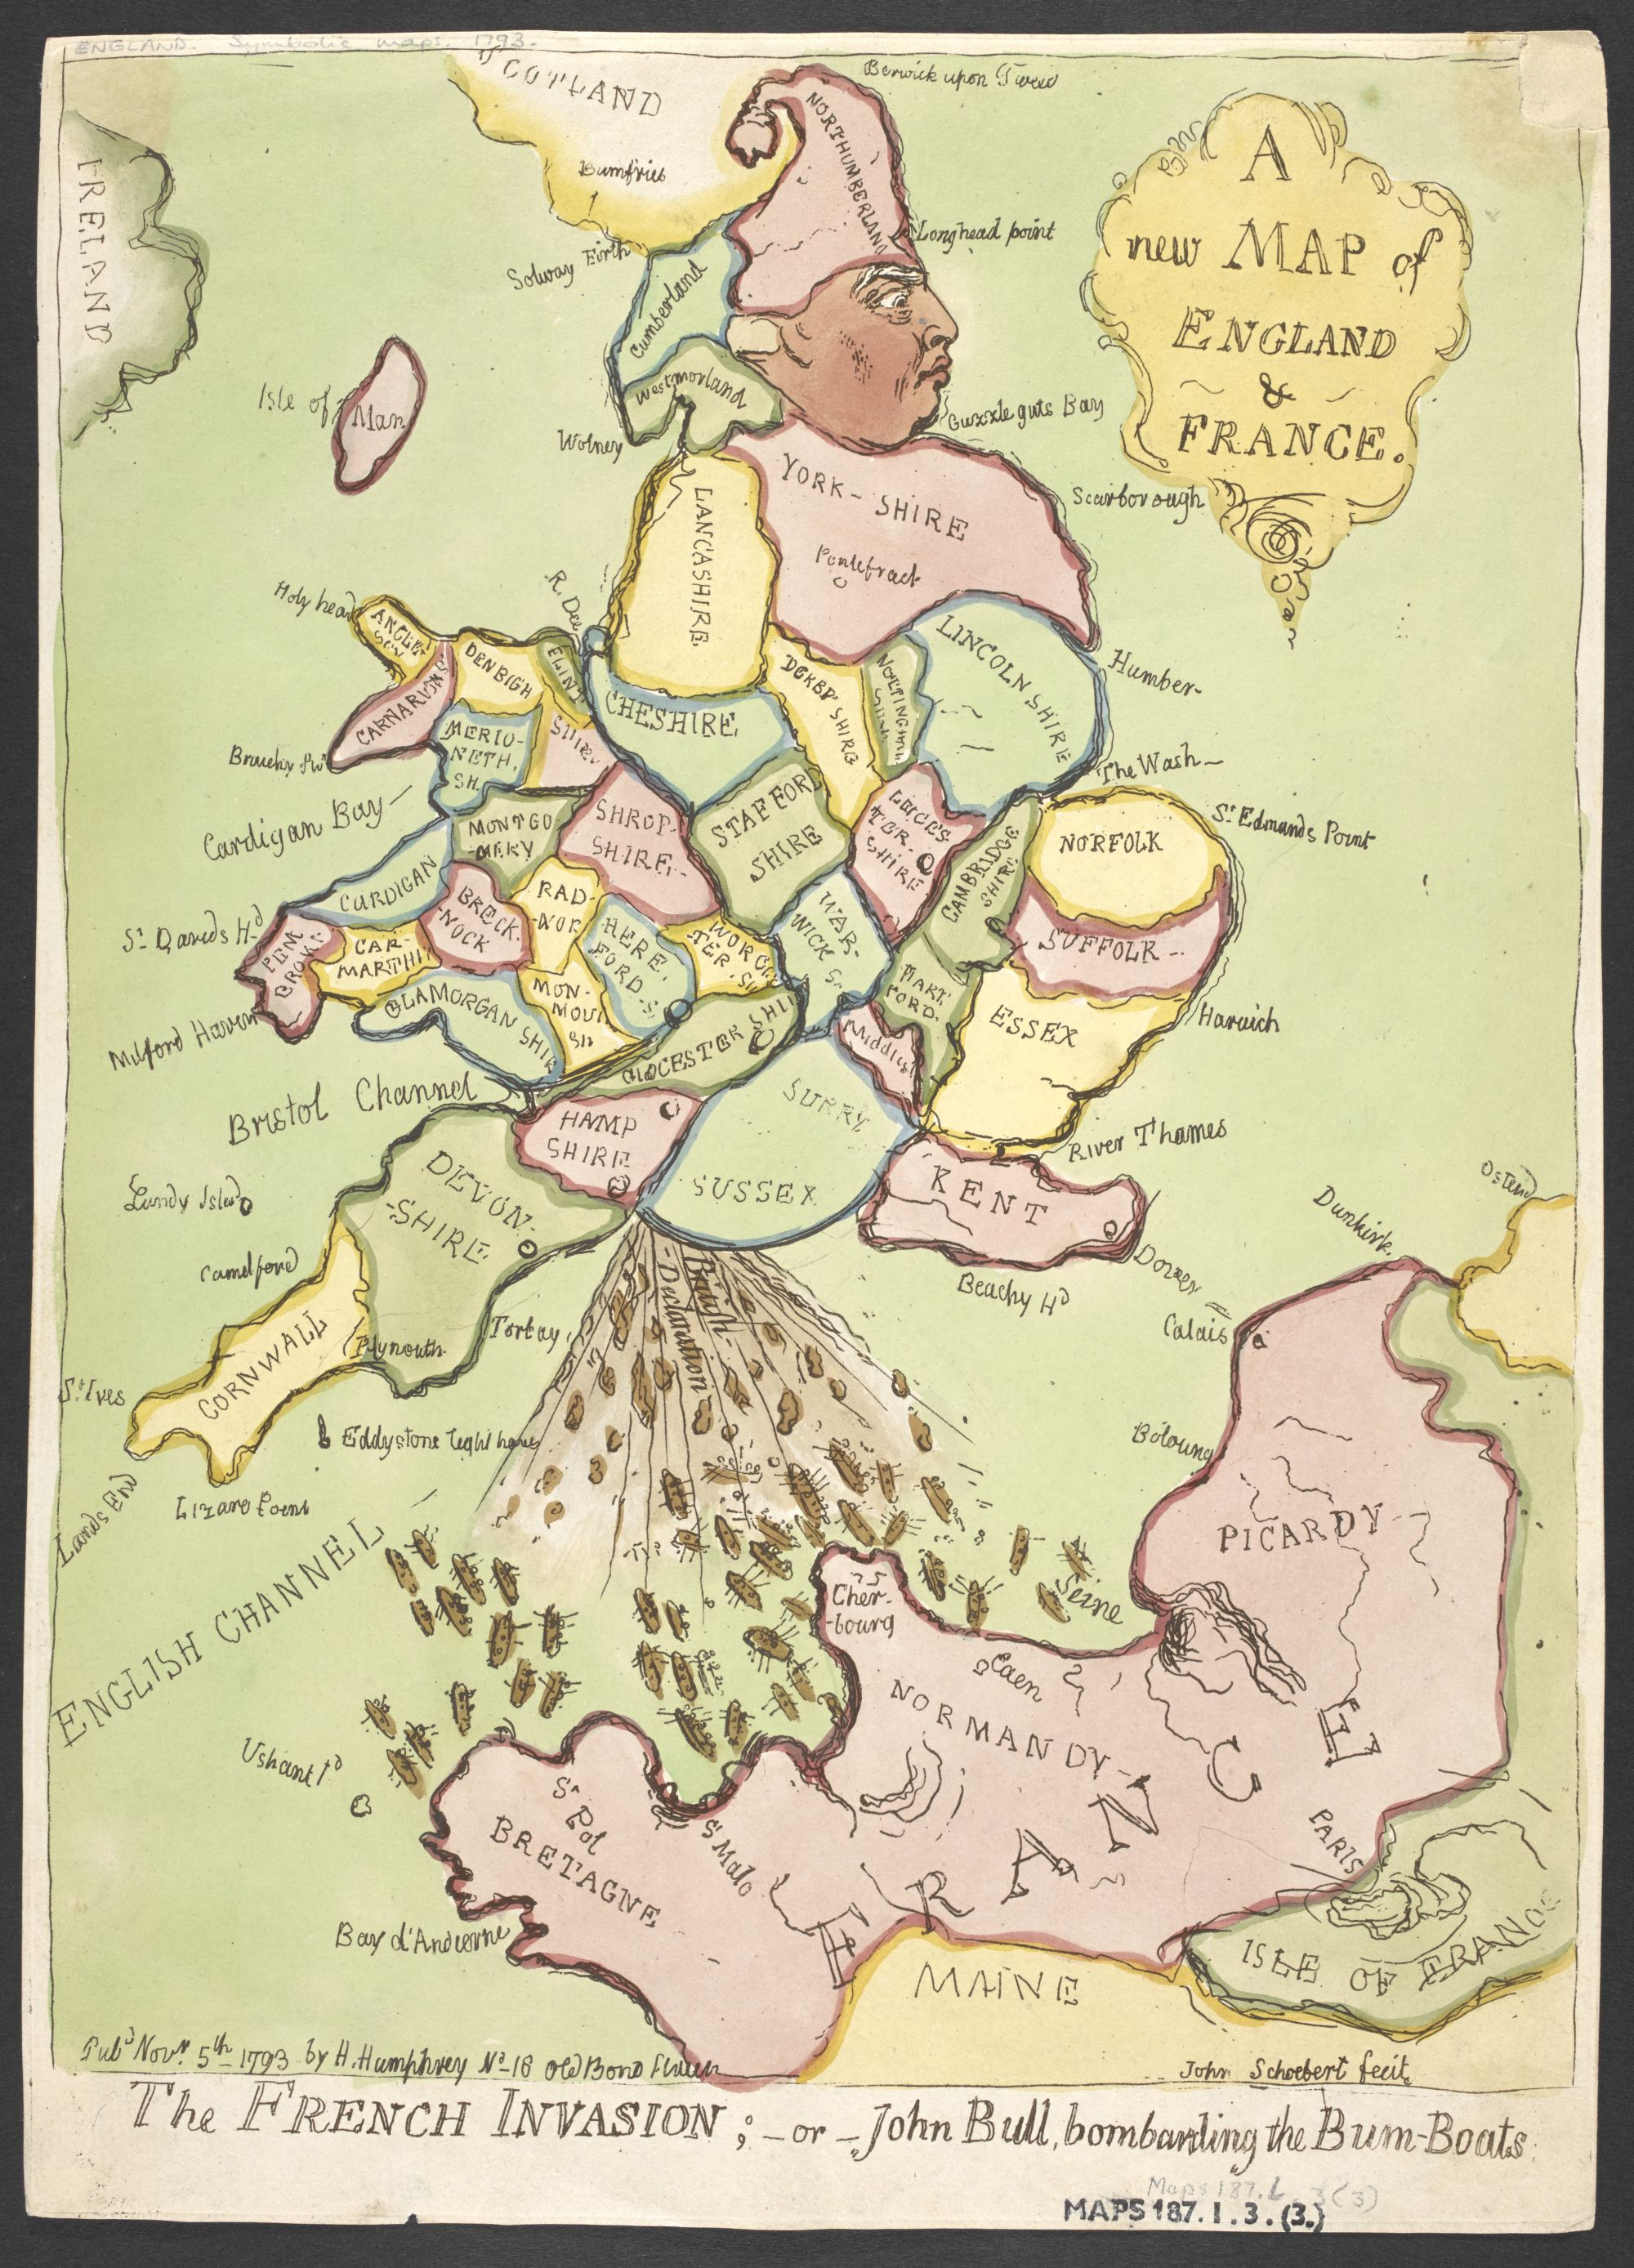 A New Map of England & France: the French Invasion | British Library ...